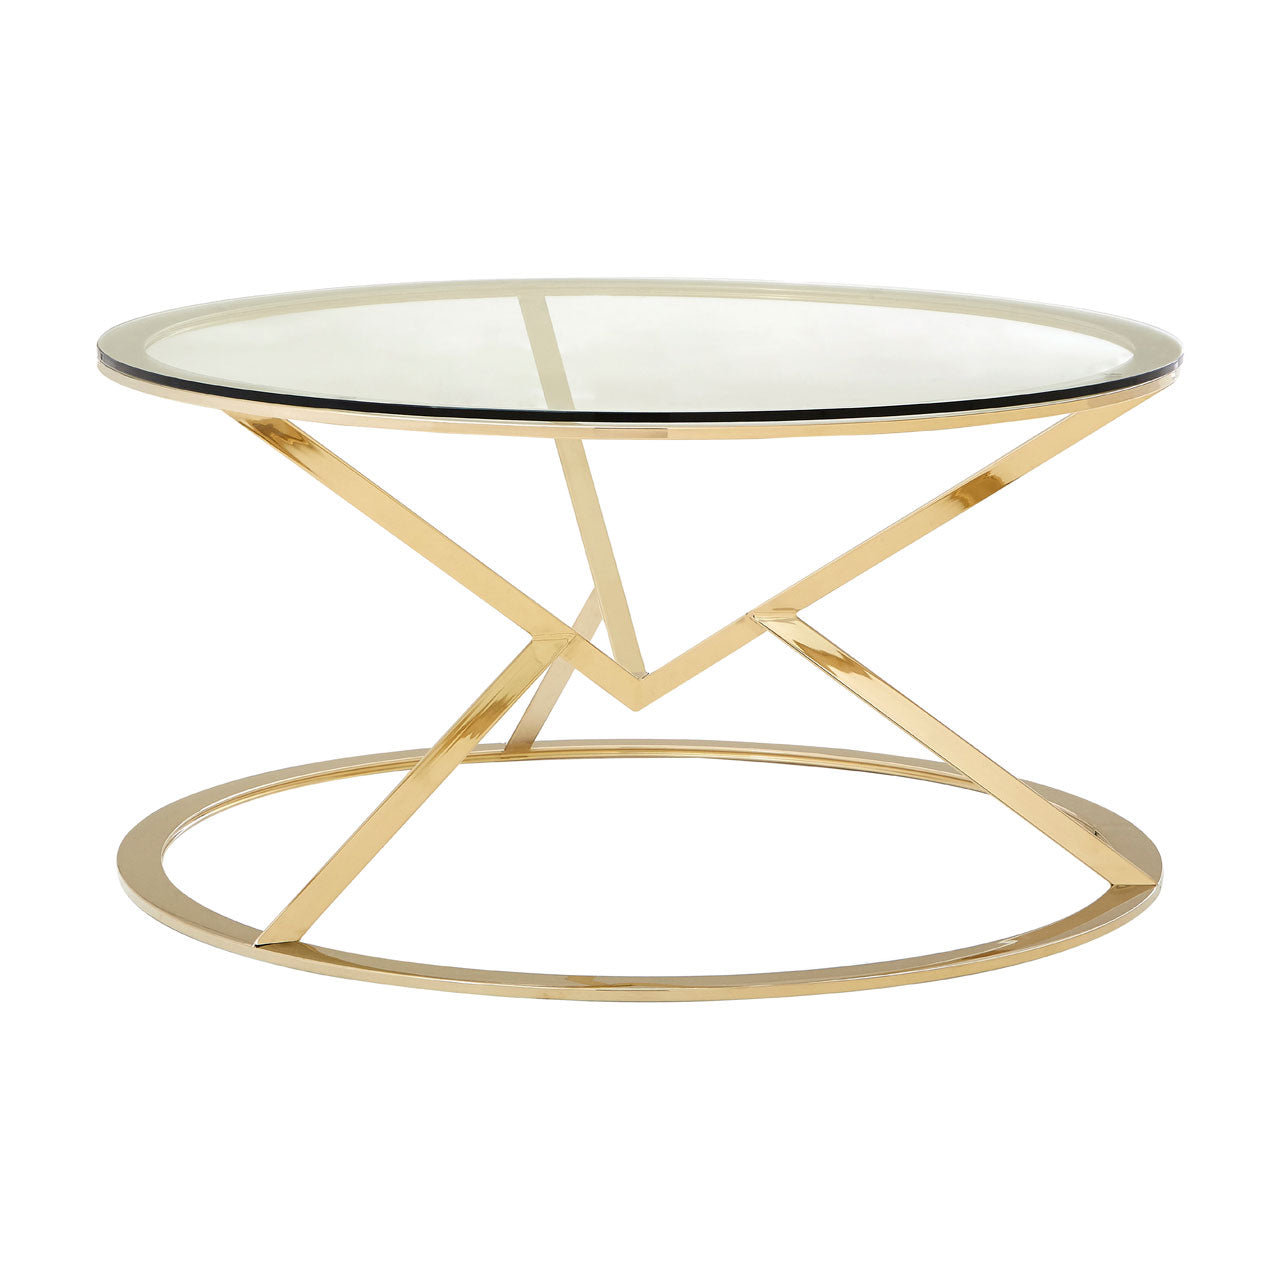 Allure Round Coffee Table Champagne Gold - Ezzo